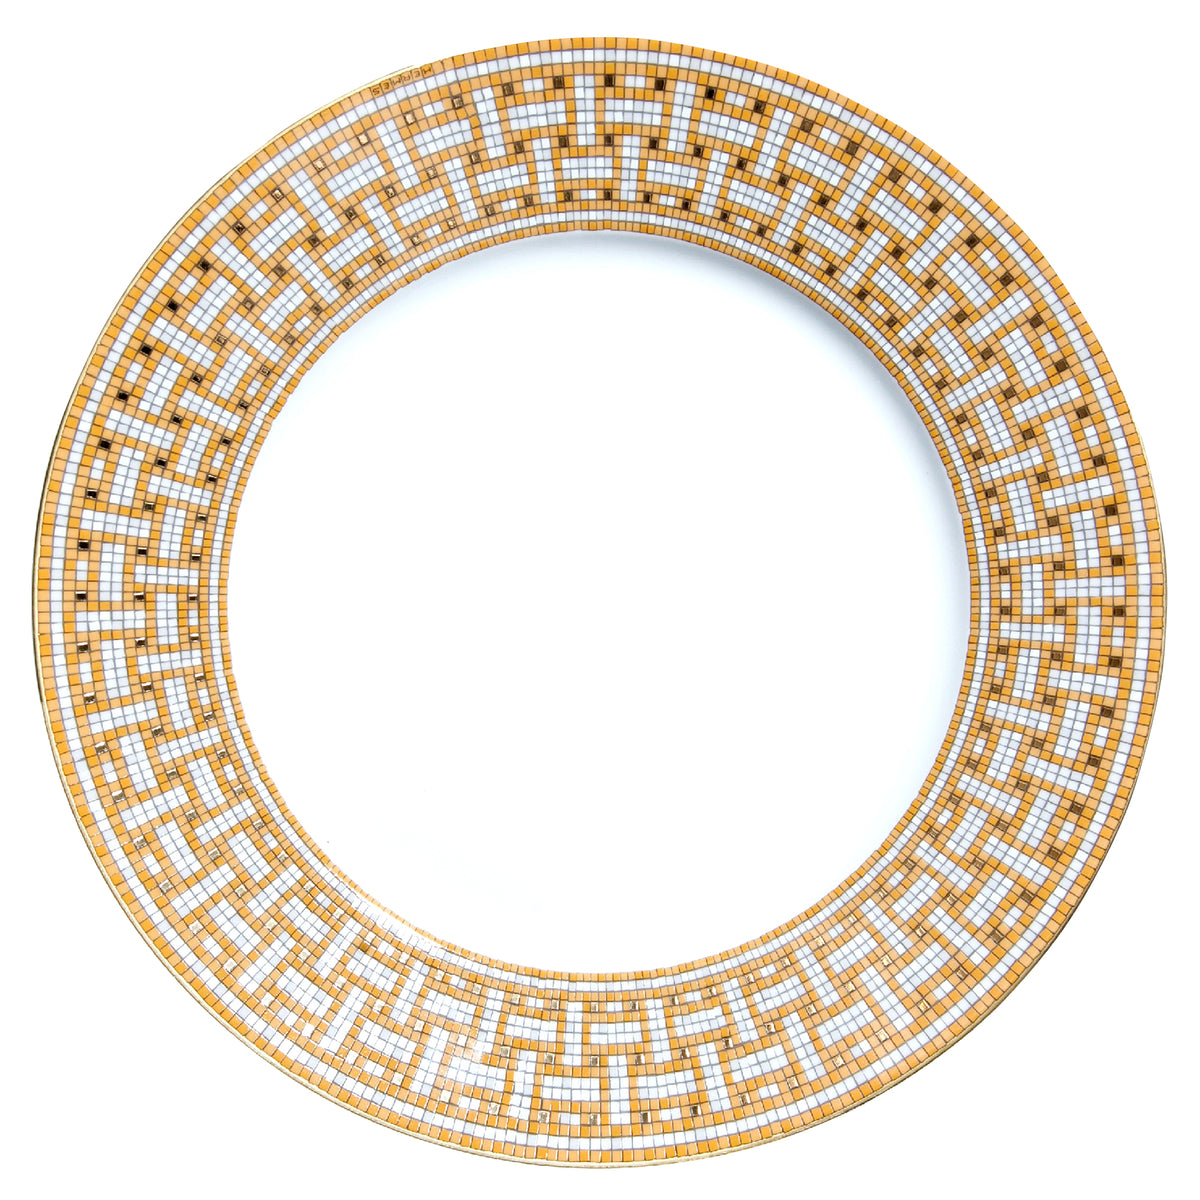 Mosaique Au 24 Gold American Dinner Plate